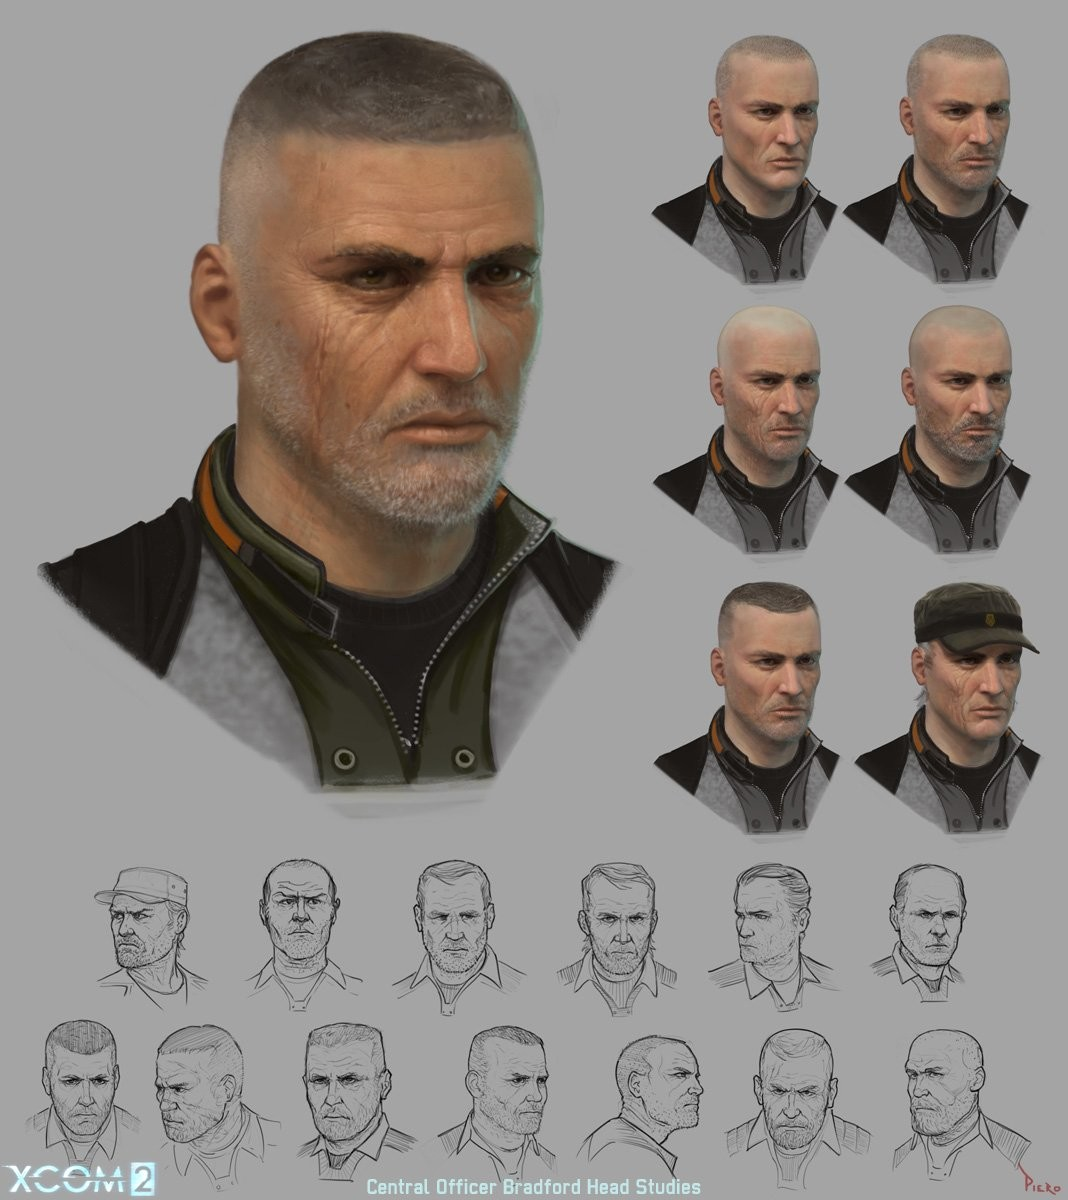 Central Officer Bradford head explorations